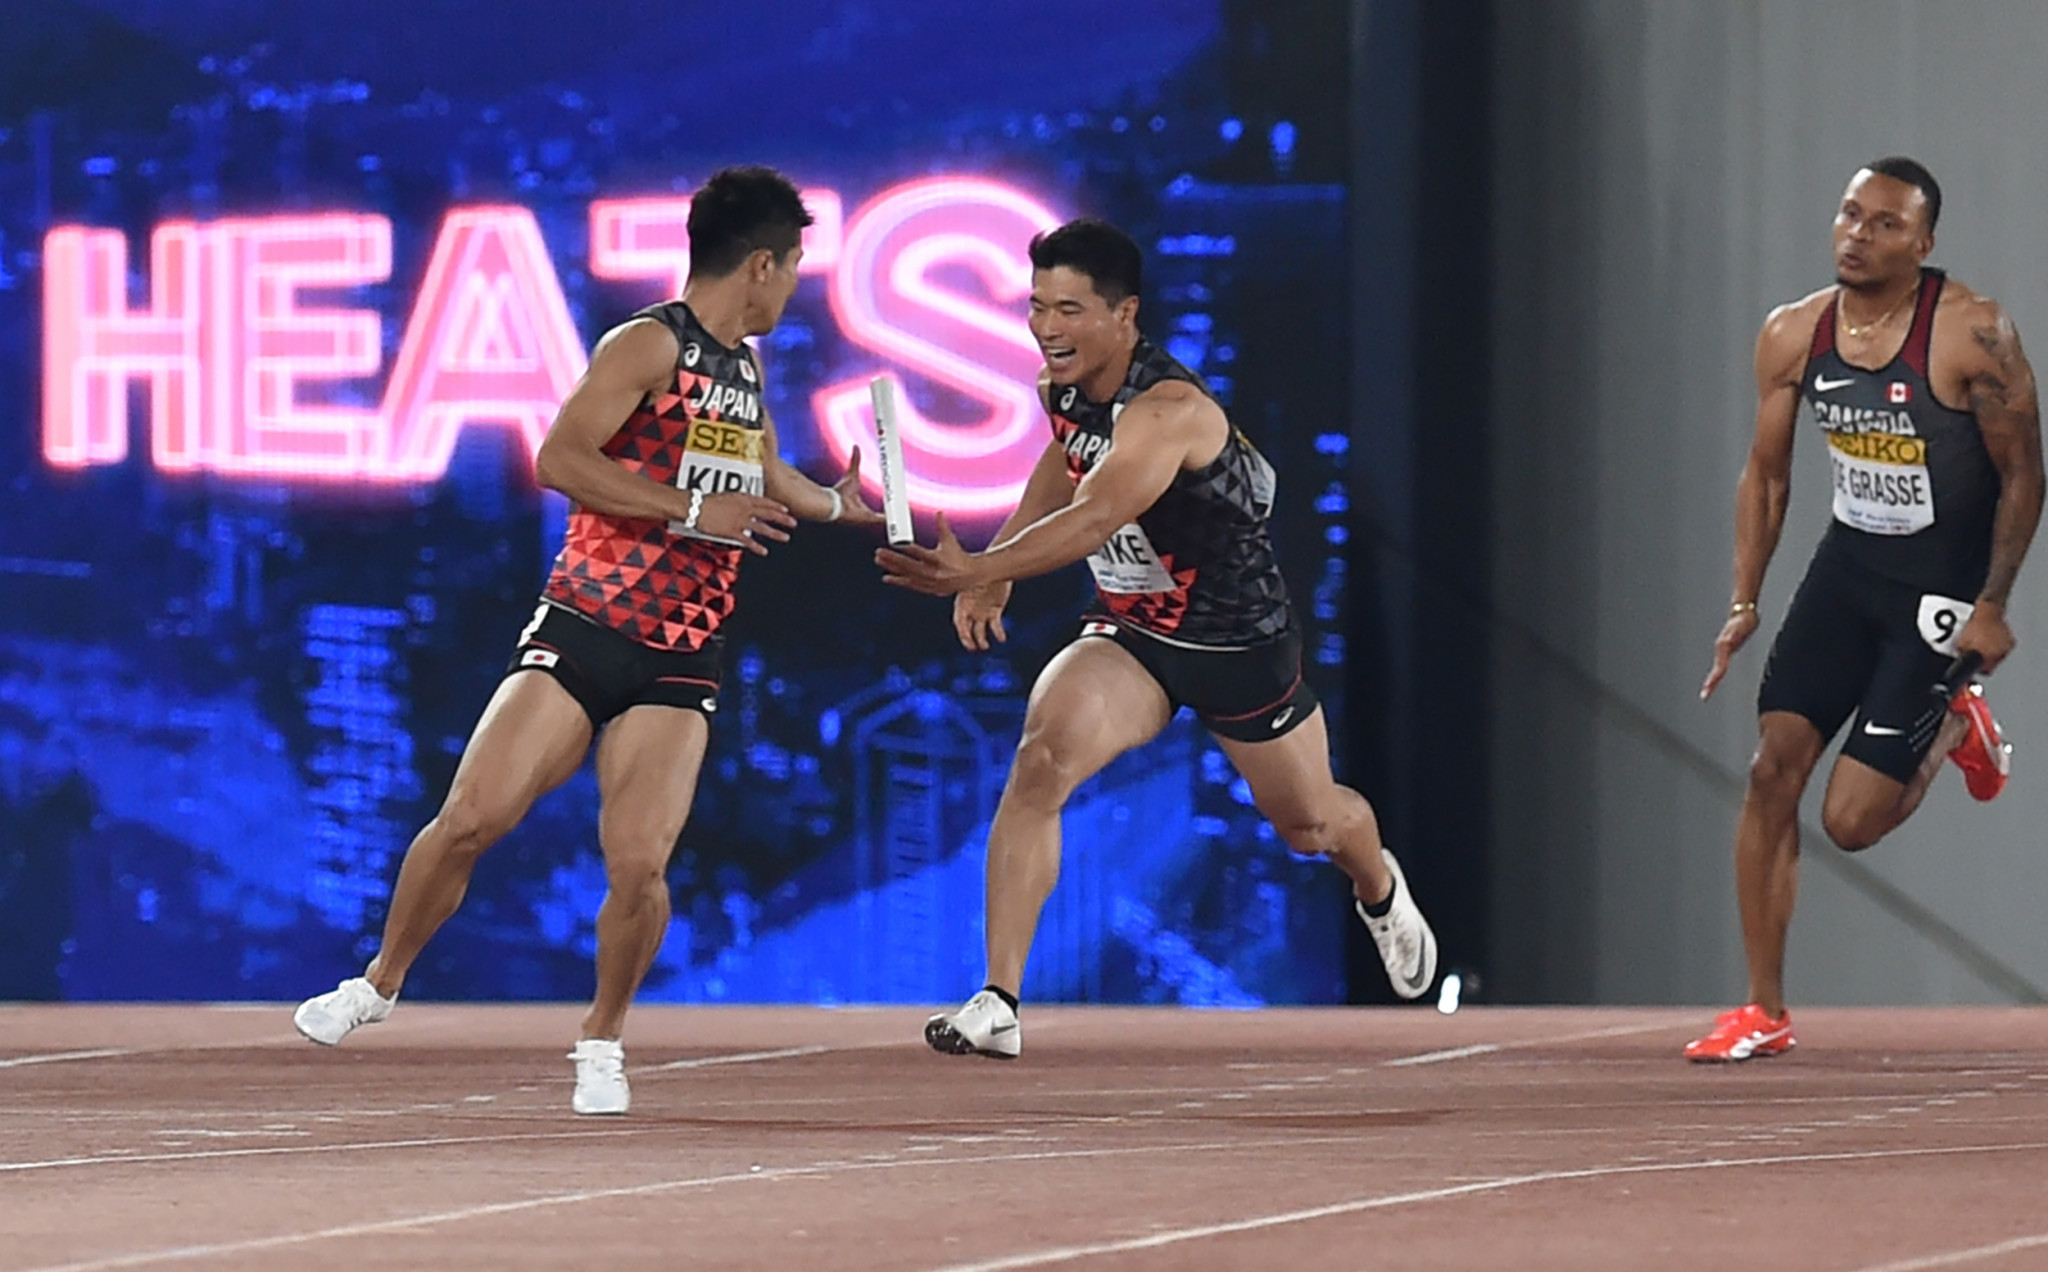 Home calamity as Japan's male 4x100m runners fail to make final at IAAF World Relays in Yokohama